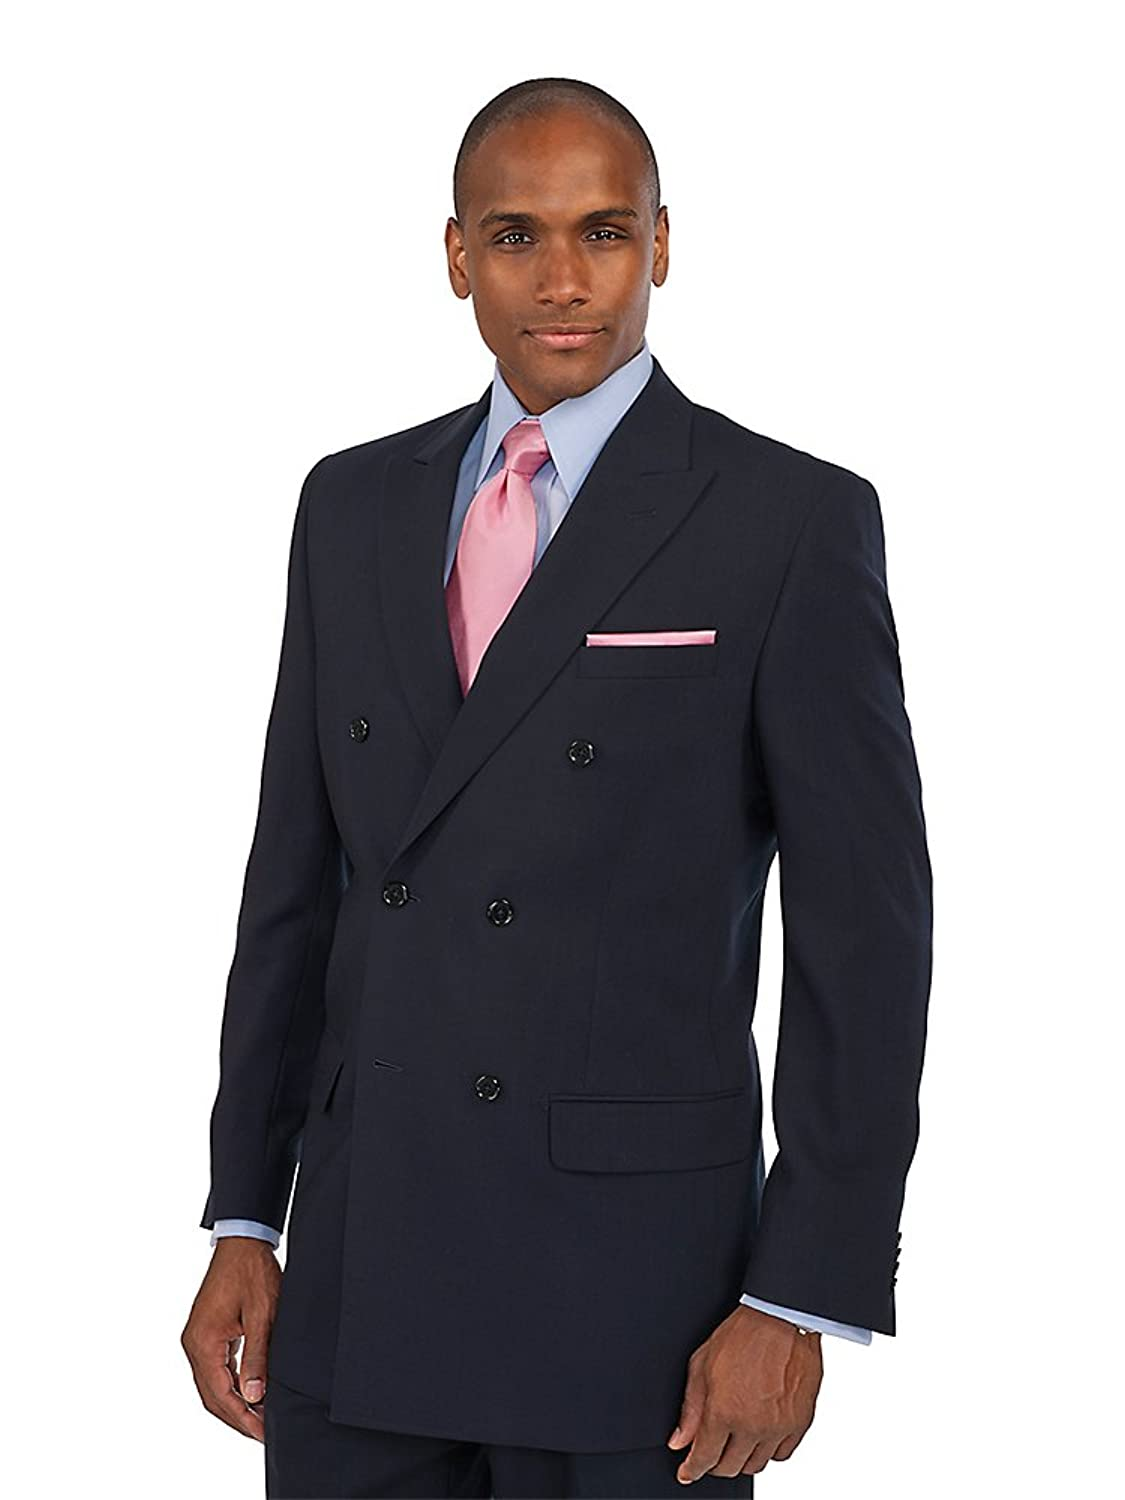 1940s Mens Suits | Gangster, Mobster, Zoot Suits Paul Fredrick Mens 100% Wool Double Breasted Peak Lapel Suit Separate Jacket $179.95 AT vintagedancer.com